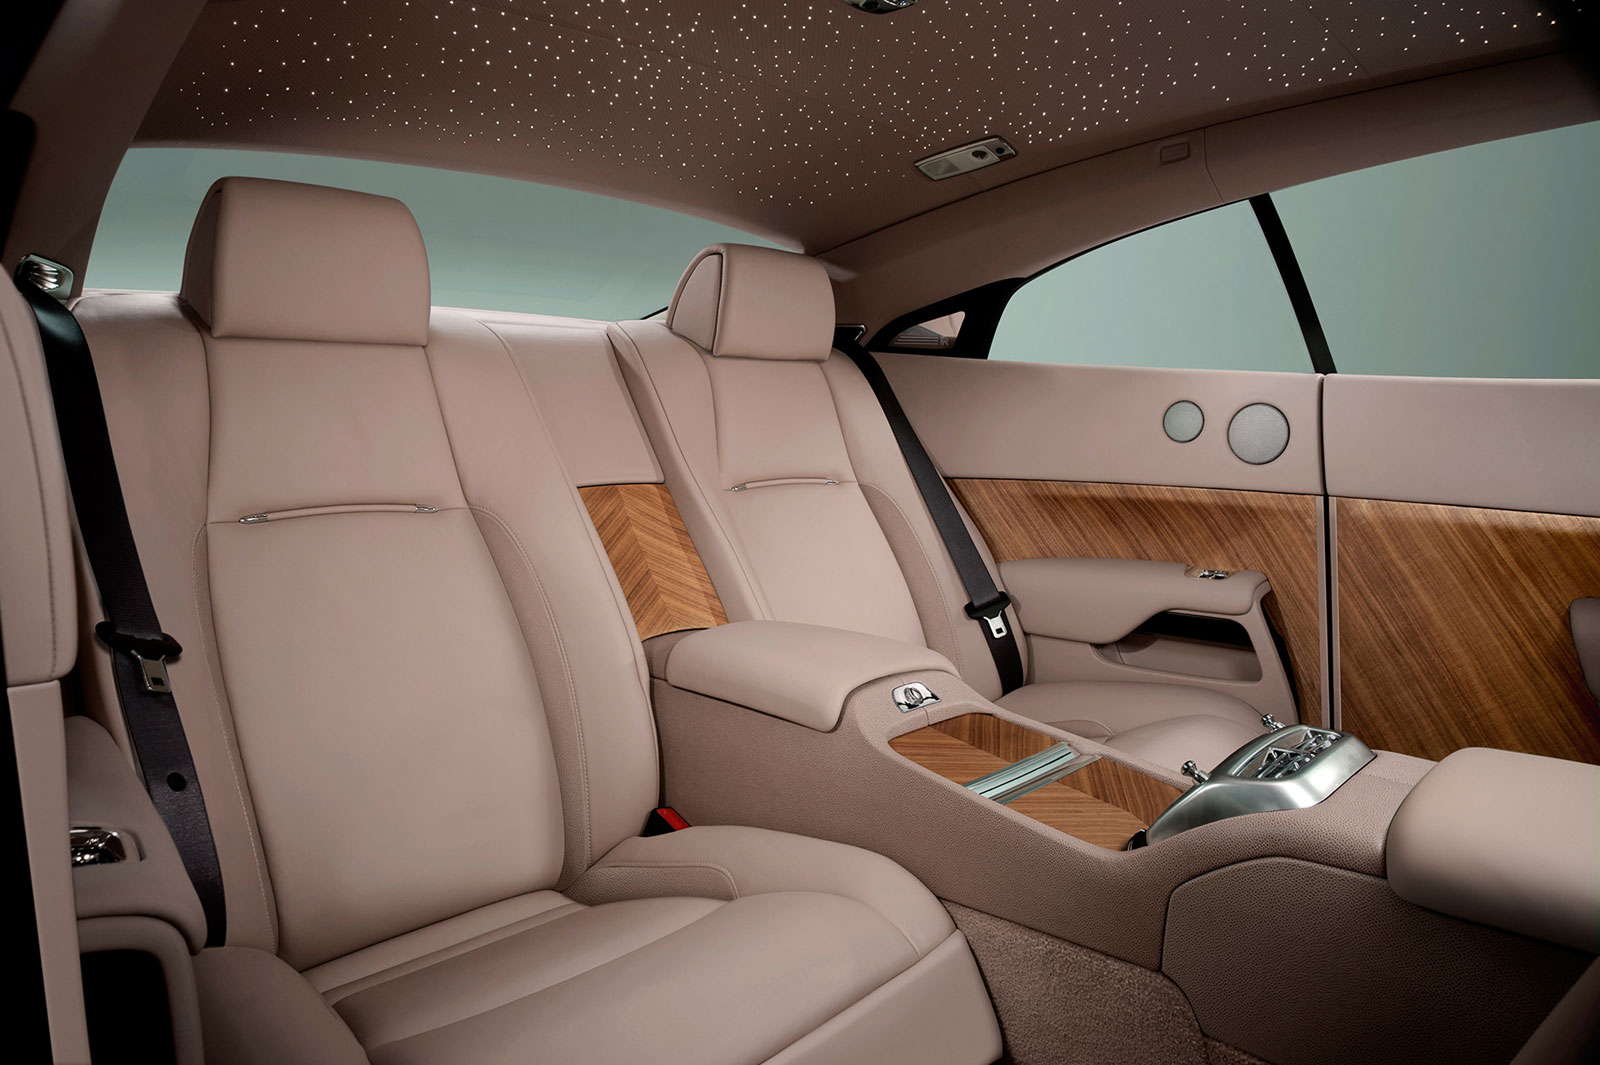 Rolls Royce Wraith Interior Car Body Design